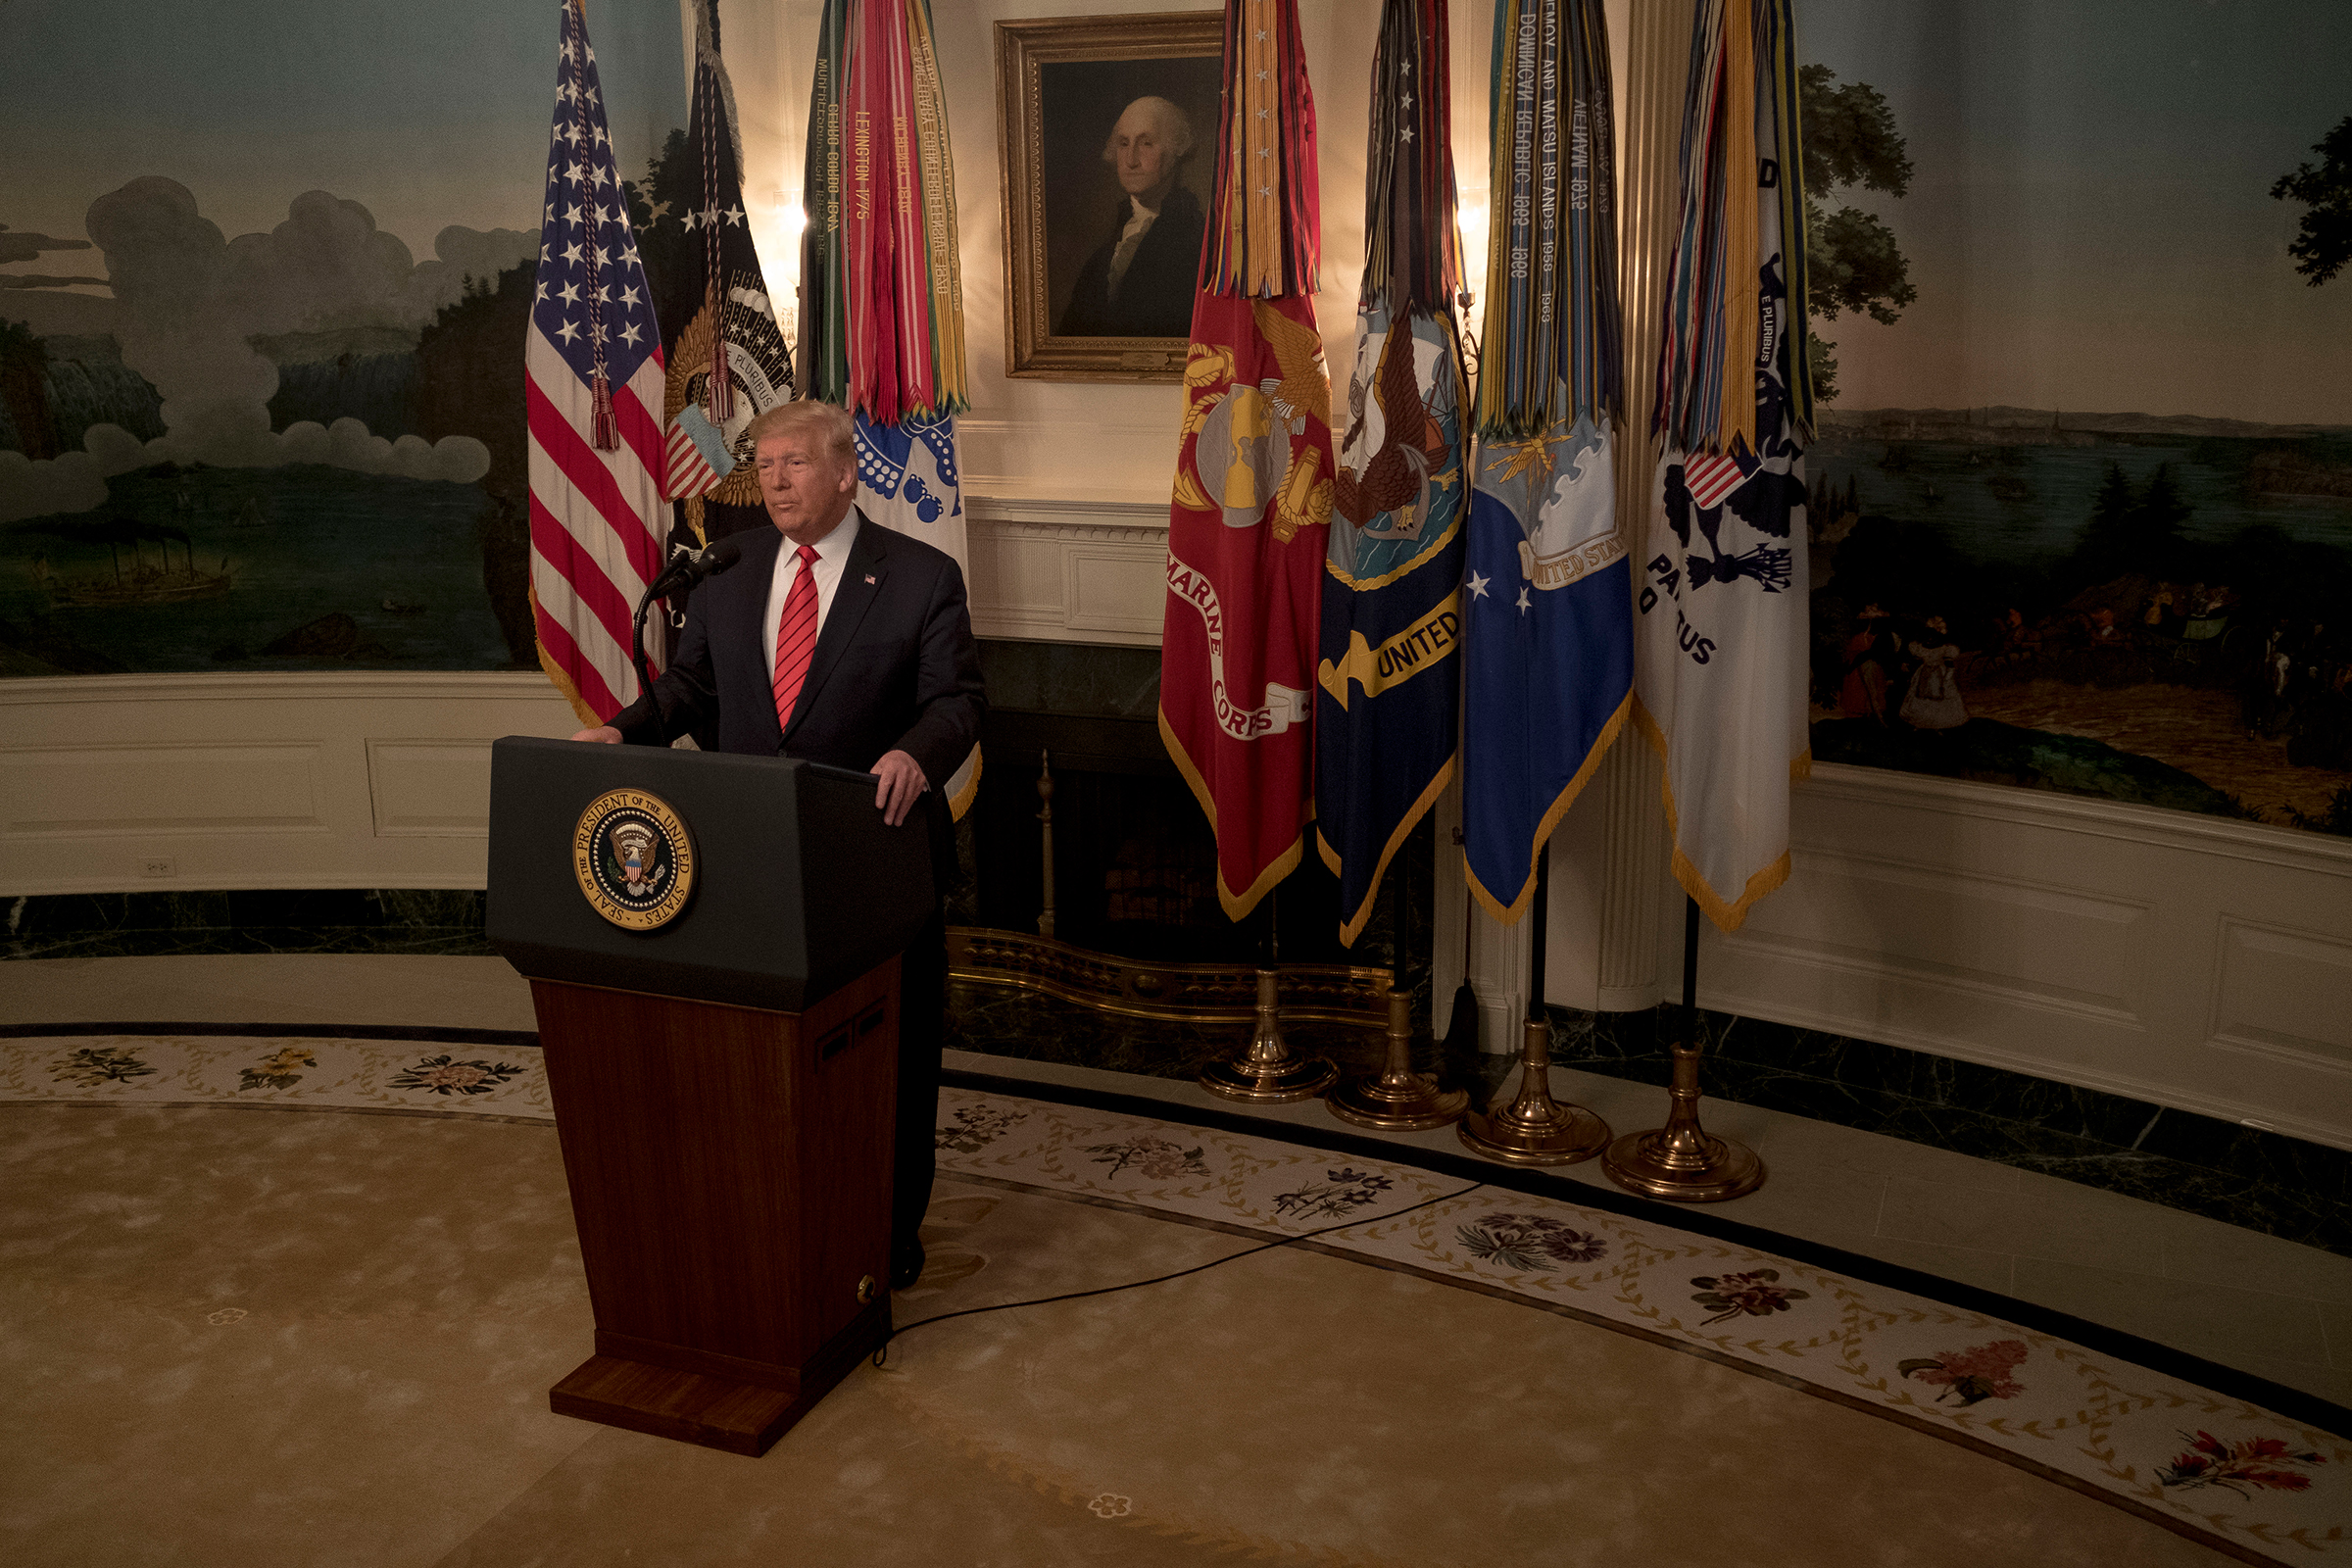 President Donald Trump announces the death of ISIS leader Abu Bakr al-Baghdadi, in a raid by American special operations forces in Syria, at the White House on Oct. 27, 2019.